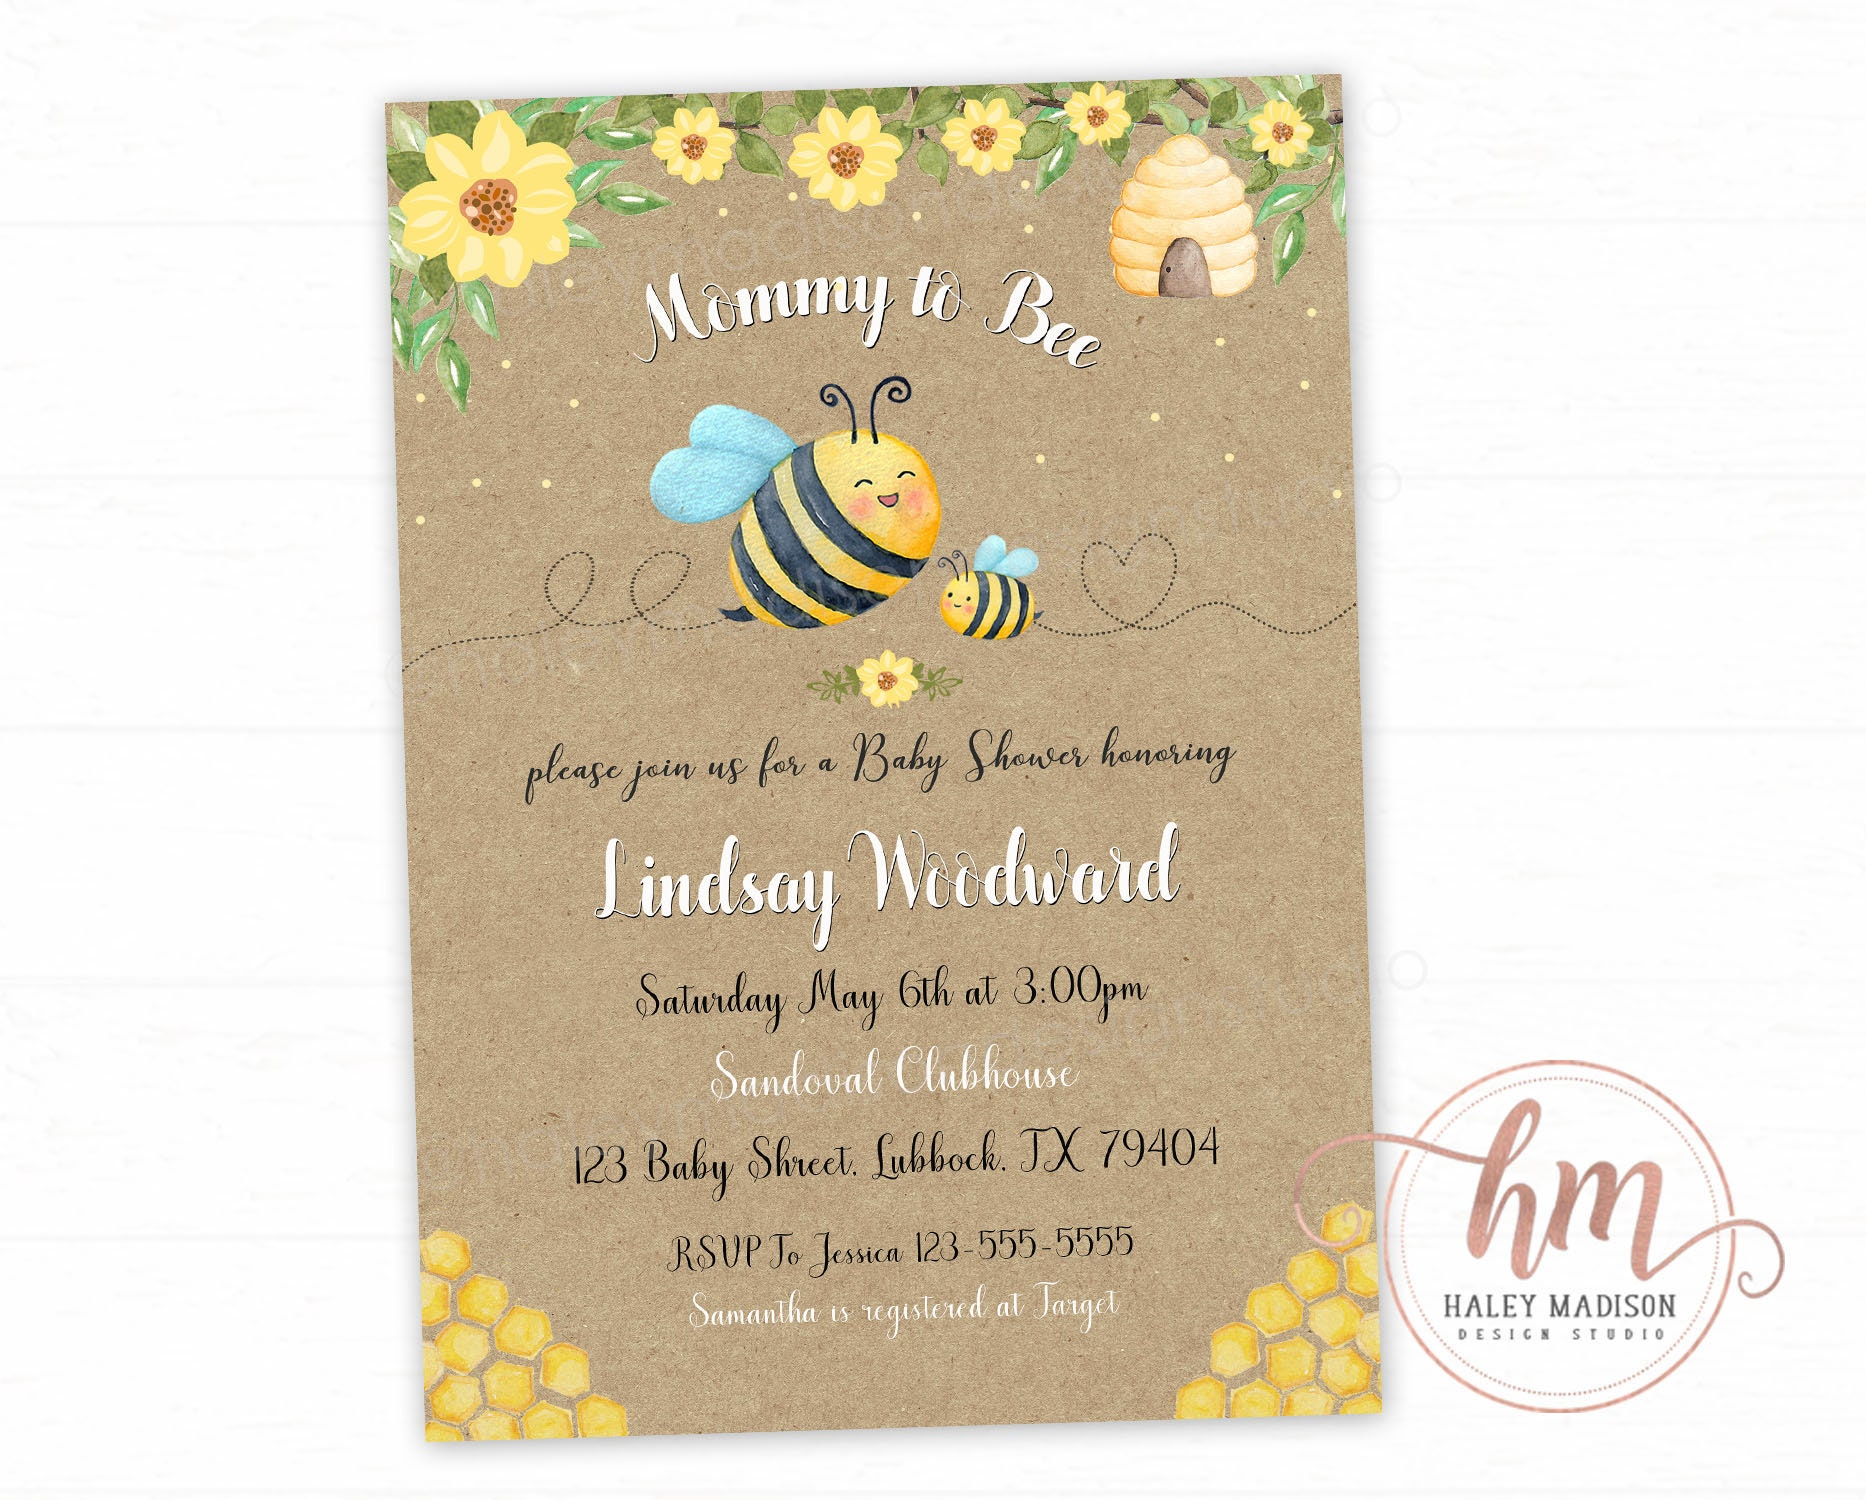 Bumble Bee Baby Shower Invitation Mommy to Bee baby shower